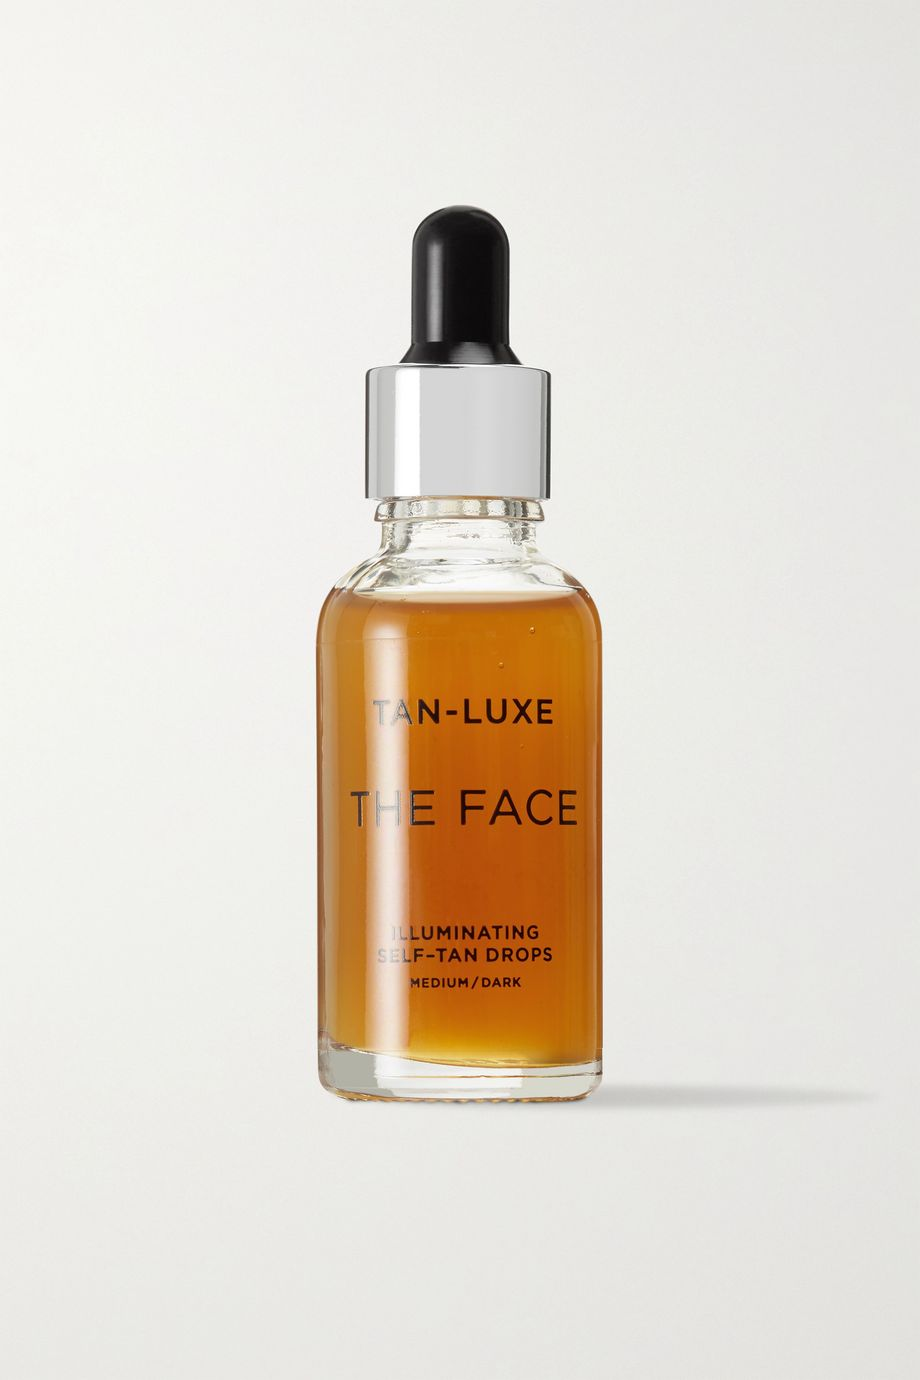 TAN-LUXE The Face Illuminating Self-Tan Drops - Medium/Dark, 30ml